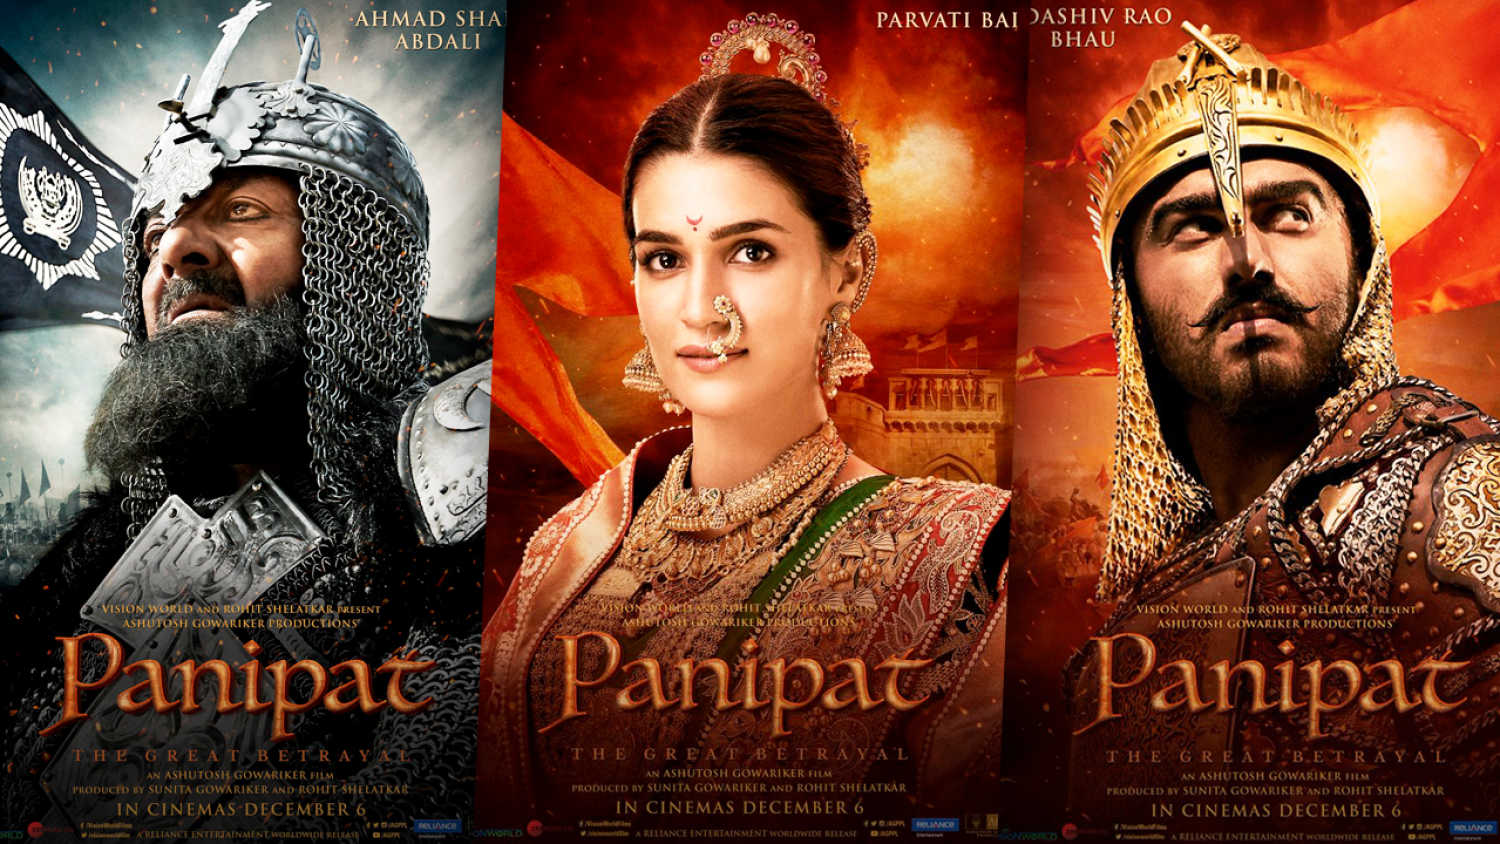 When Panipat movie will be released?